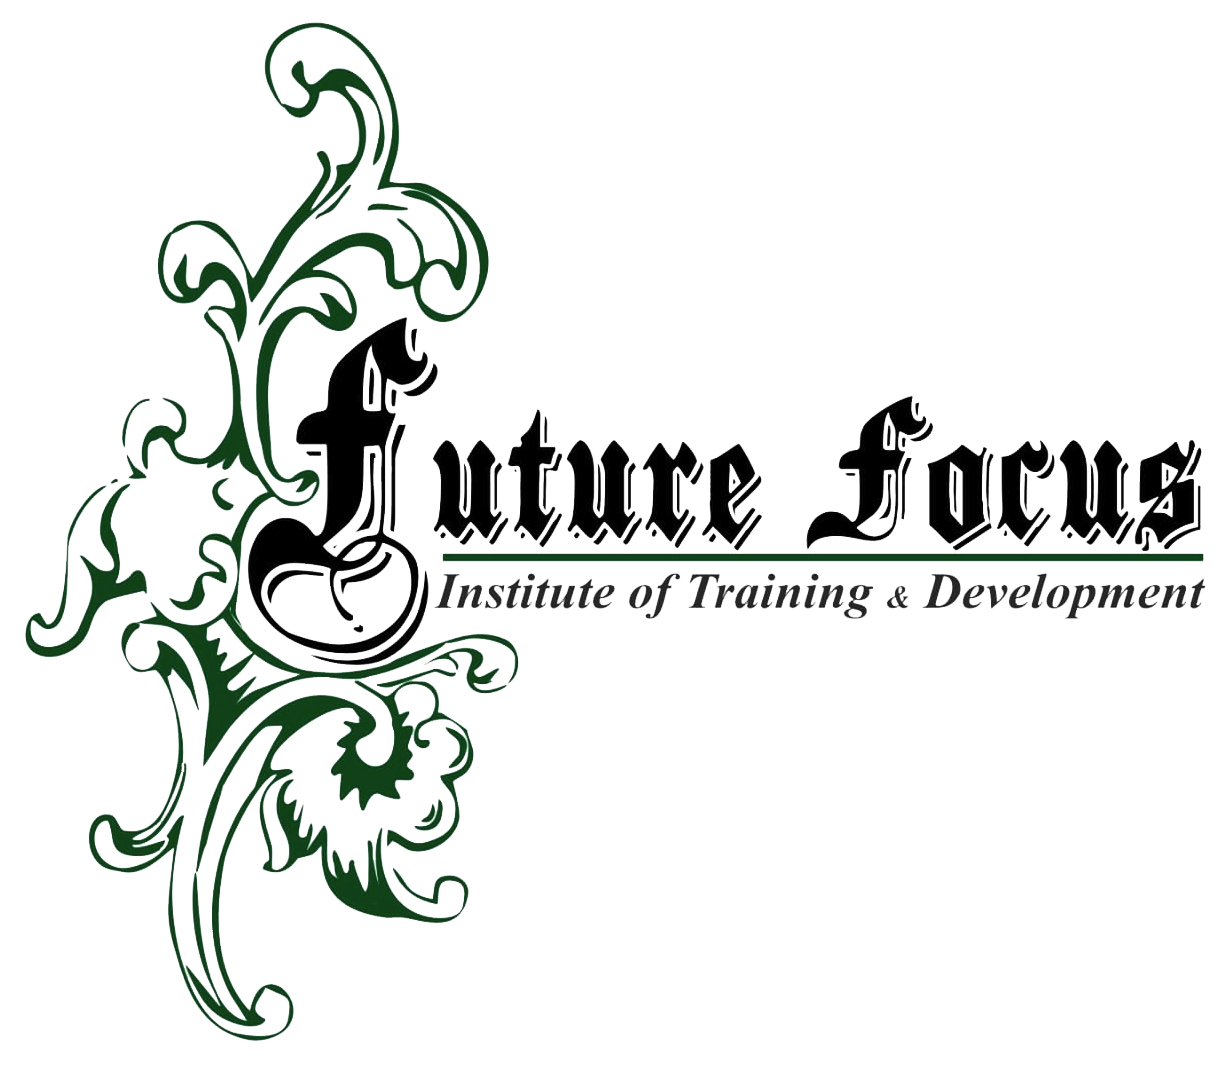 Future Focus Institute of Training & Development